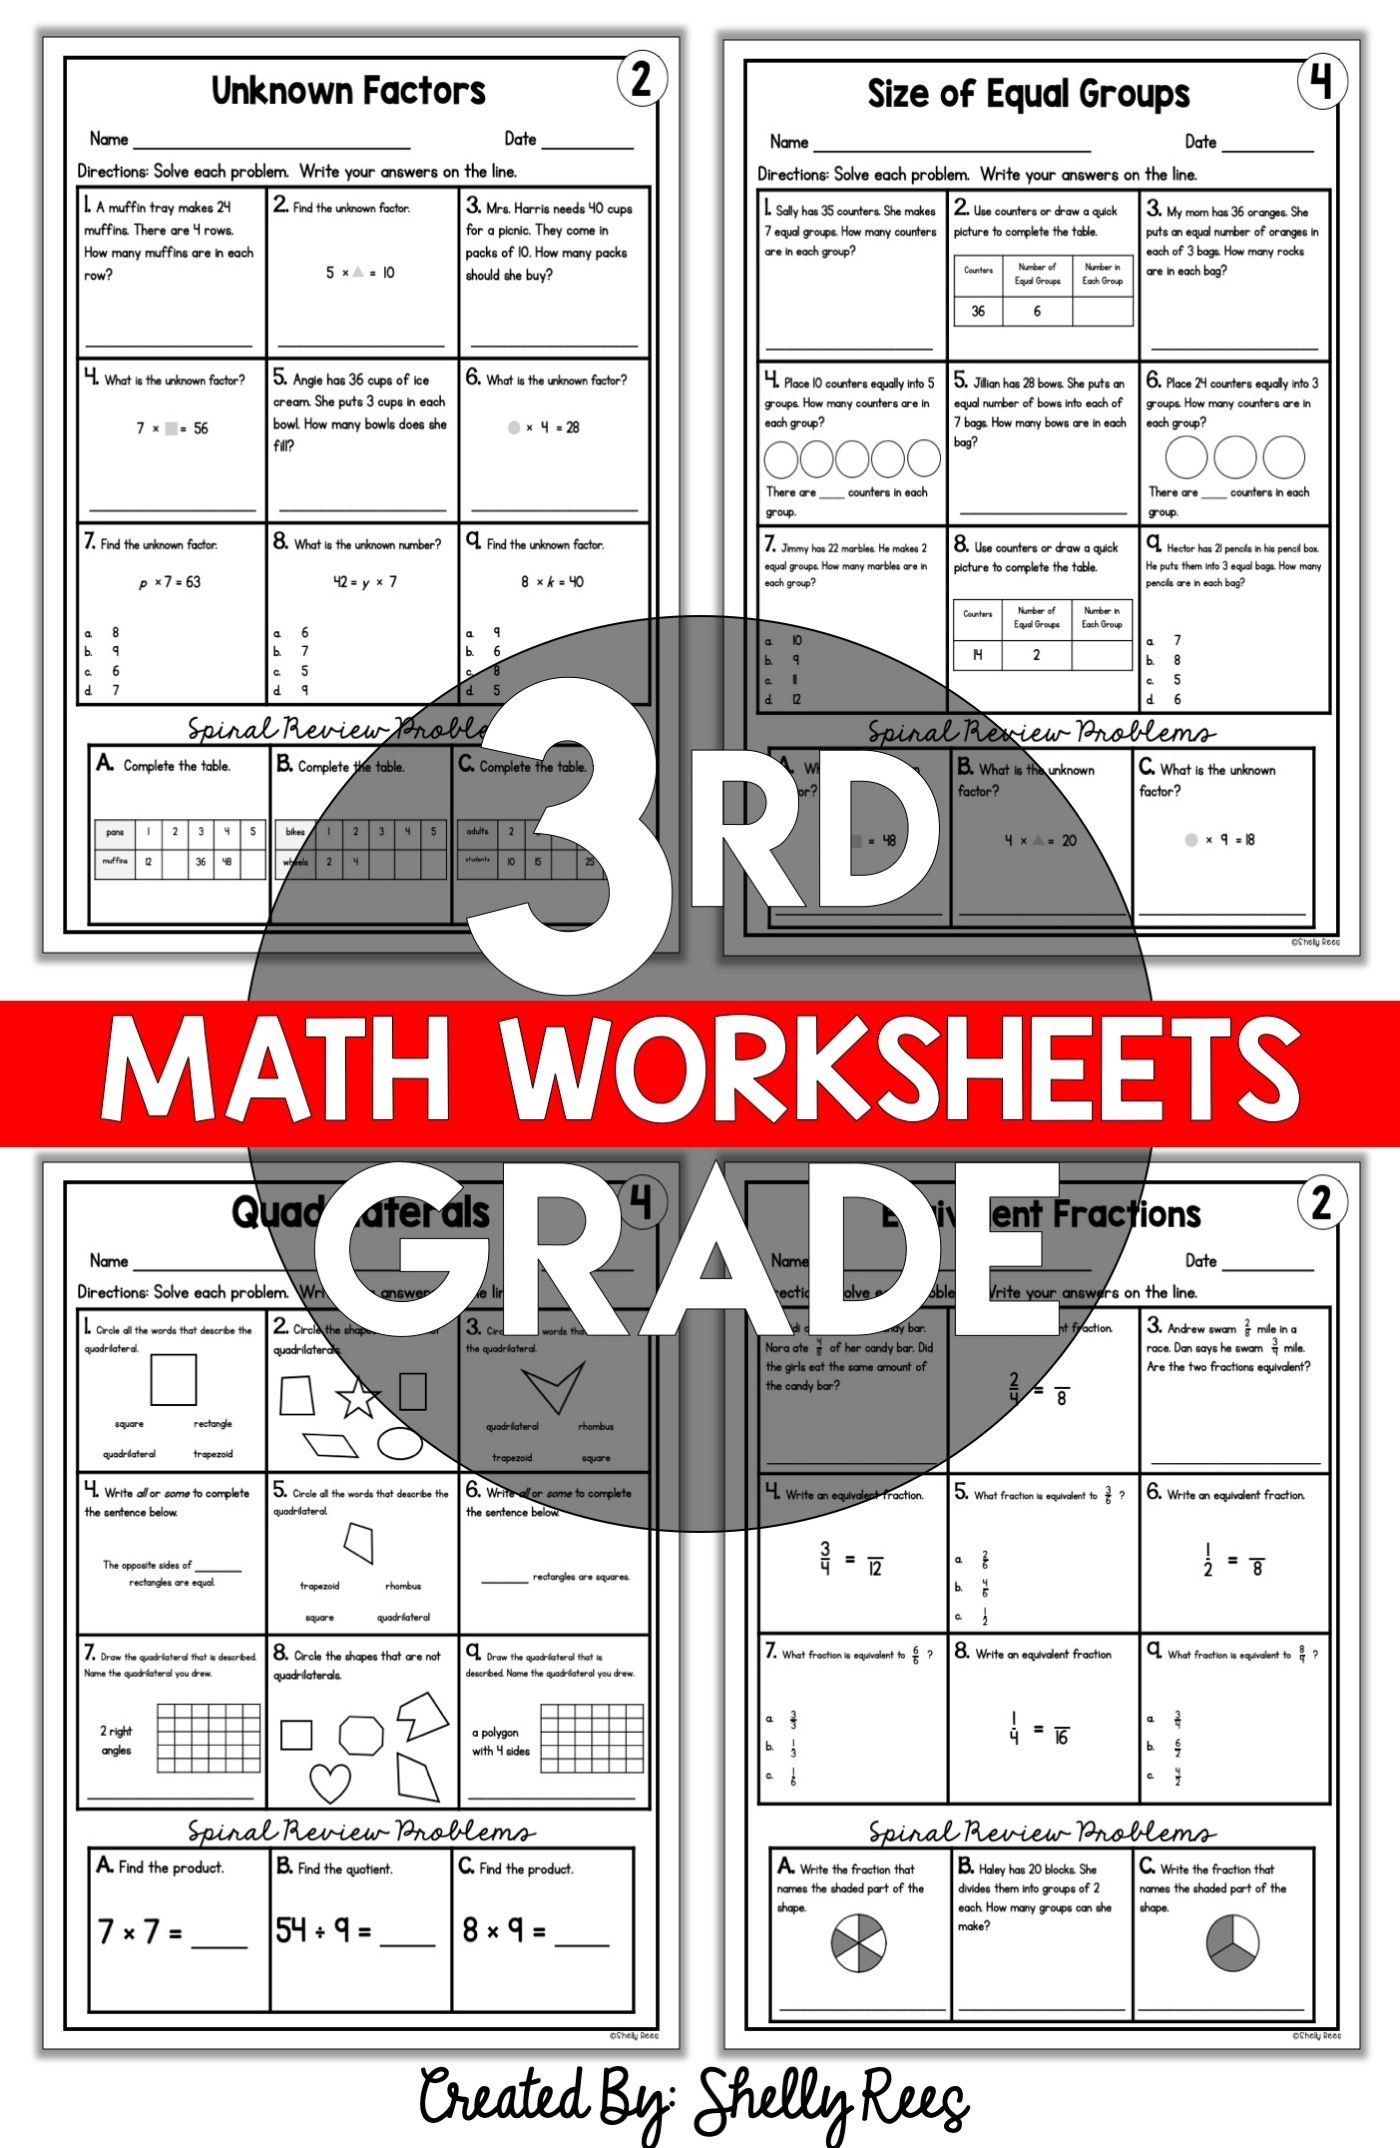 3rd Grade Math Worksheets Free and Printable - Appletastic Learning   Math  worksheets [ 2148 x 1400 Pixel ]